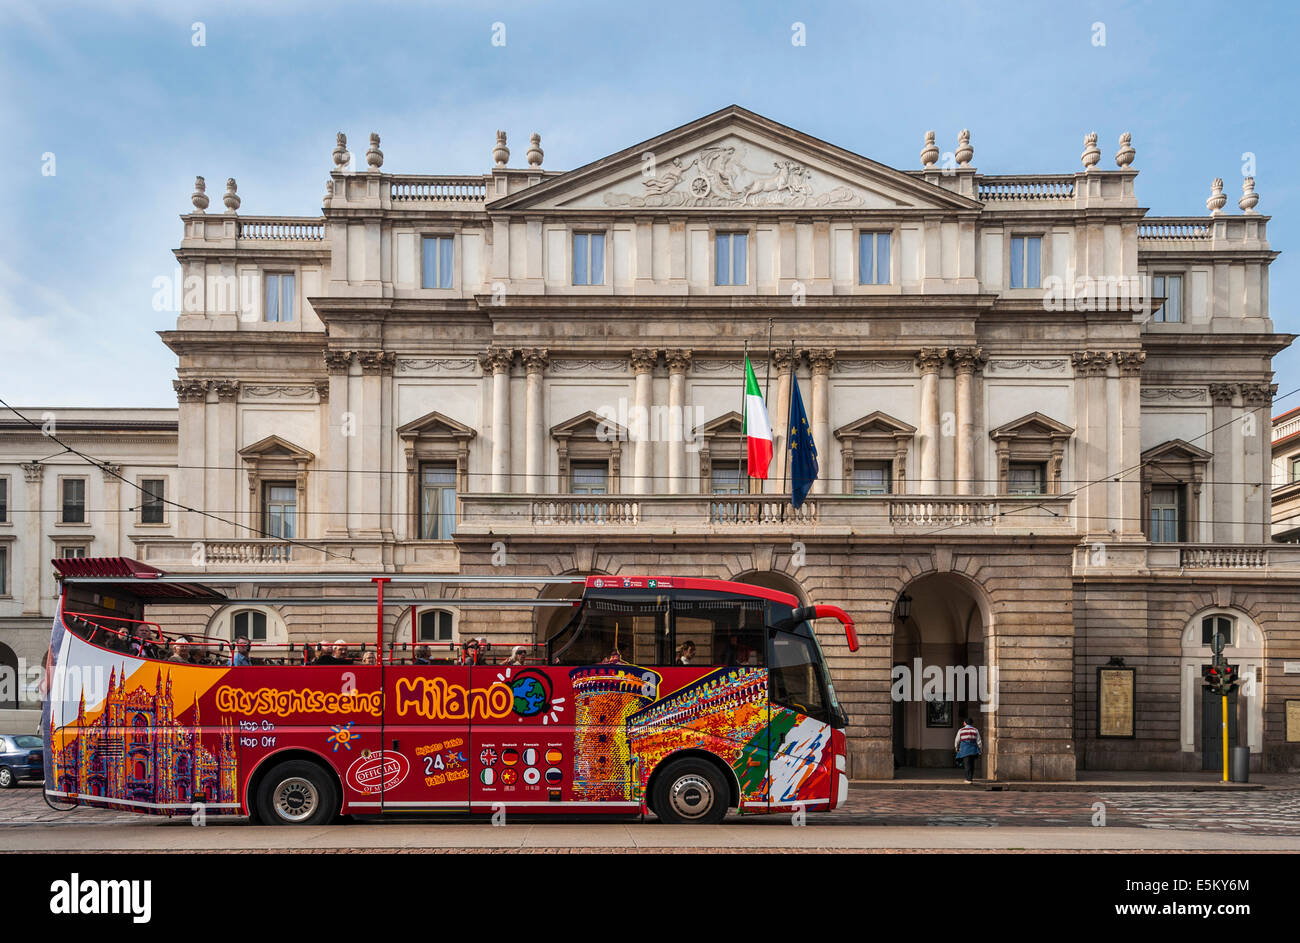 Sightseeing bus in front of La Scala, Milan, Lombardy, Italy - Stock Image